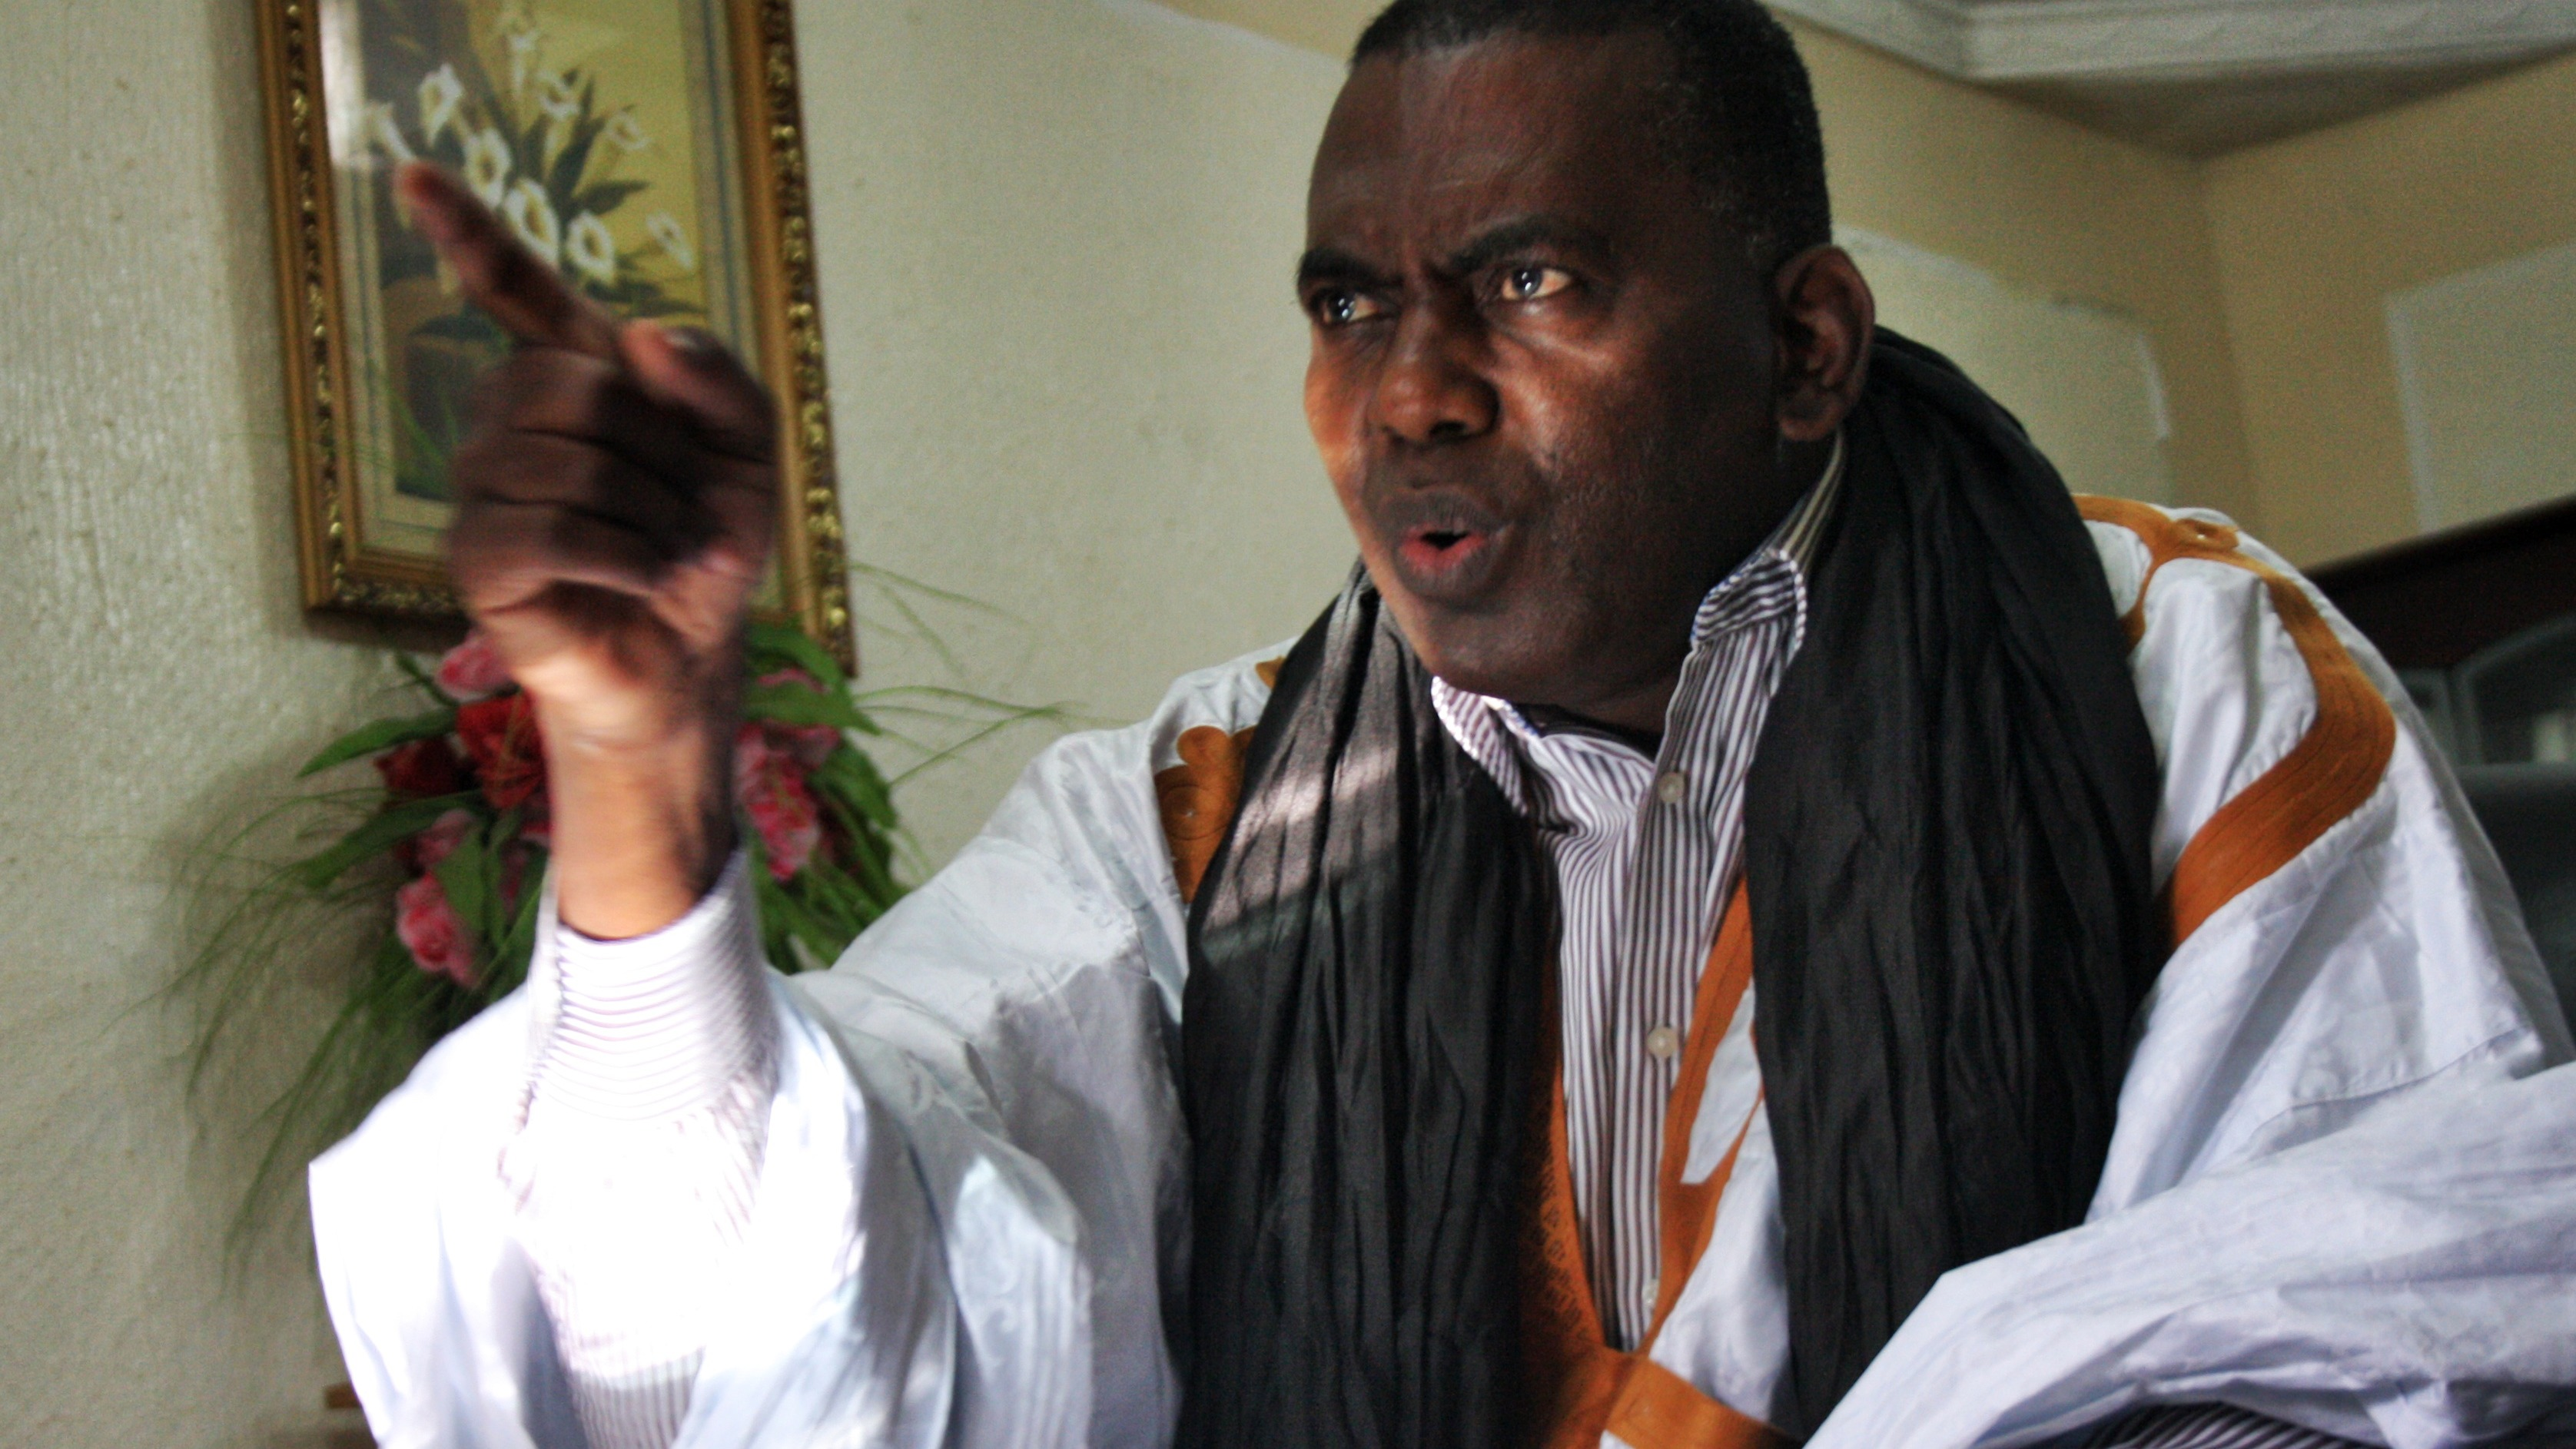 Biram Dah Abeid, the Mauritanian anti-slavery activist, a few days before his arrest.